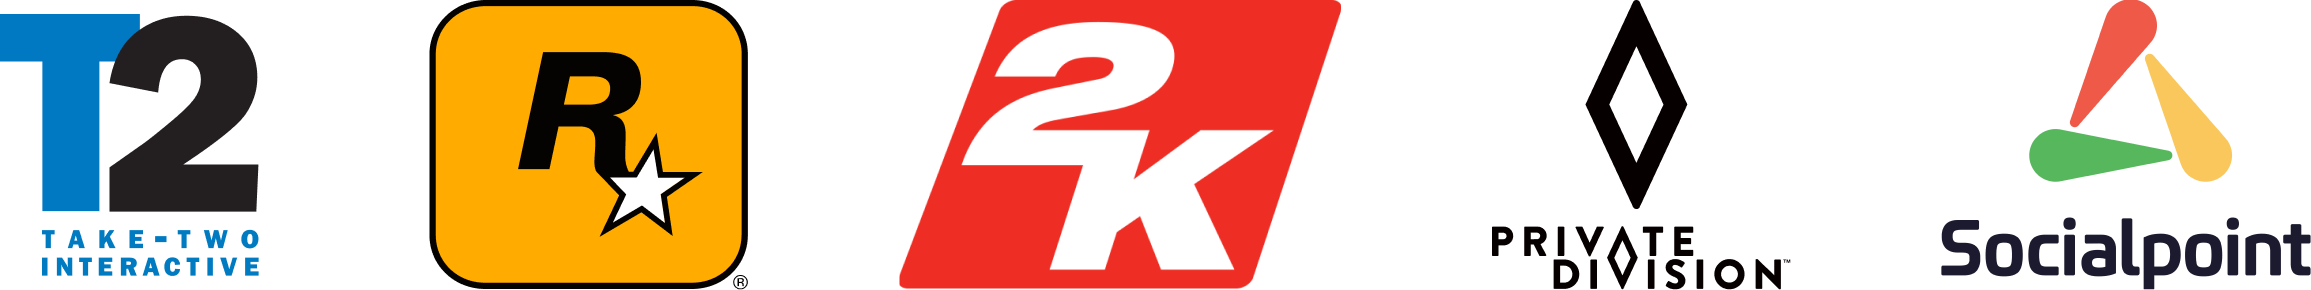 Company Logos - Take-Two Interactive, Rockstar, 2K, Private Division, Socialpoint